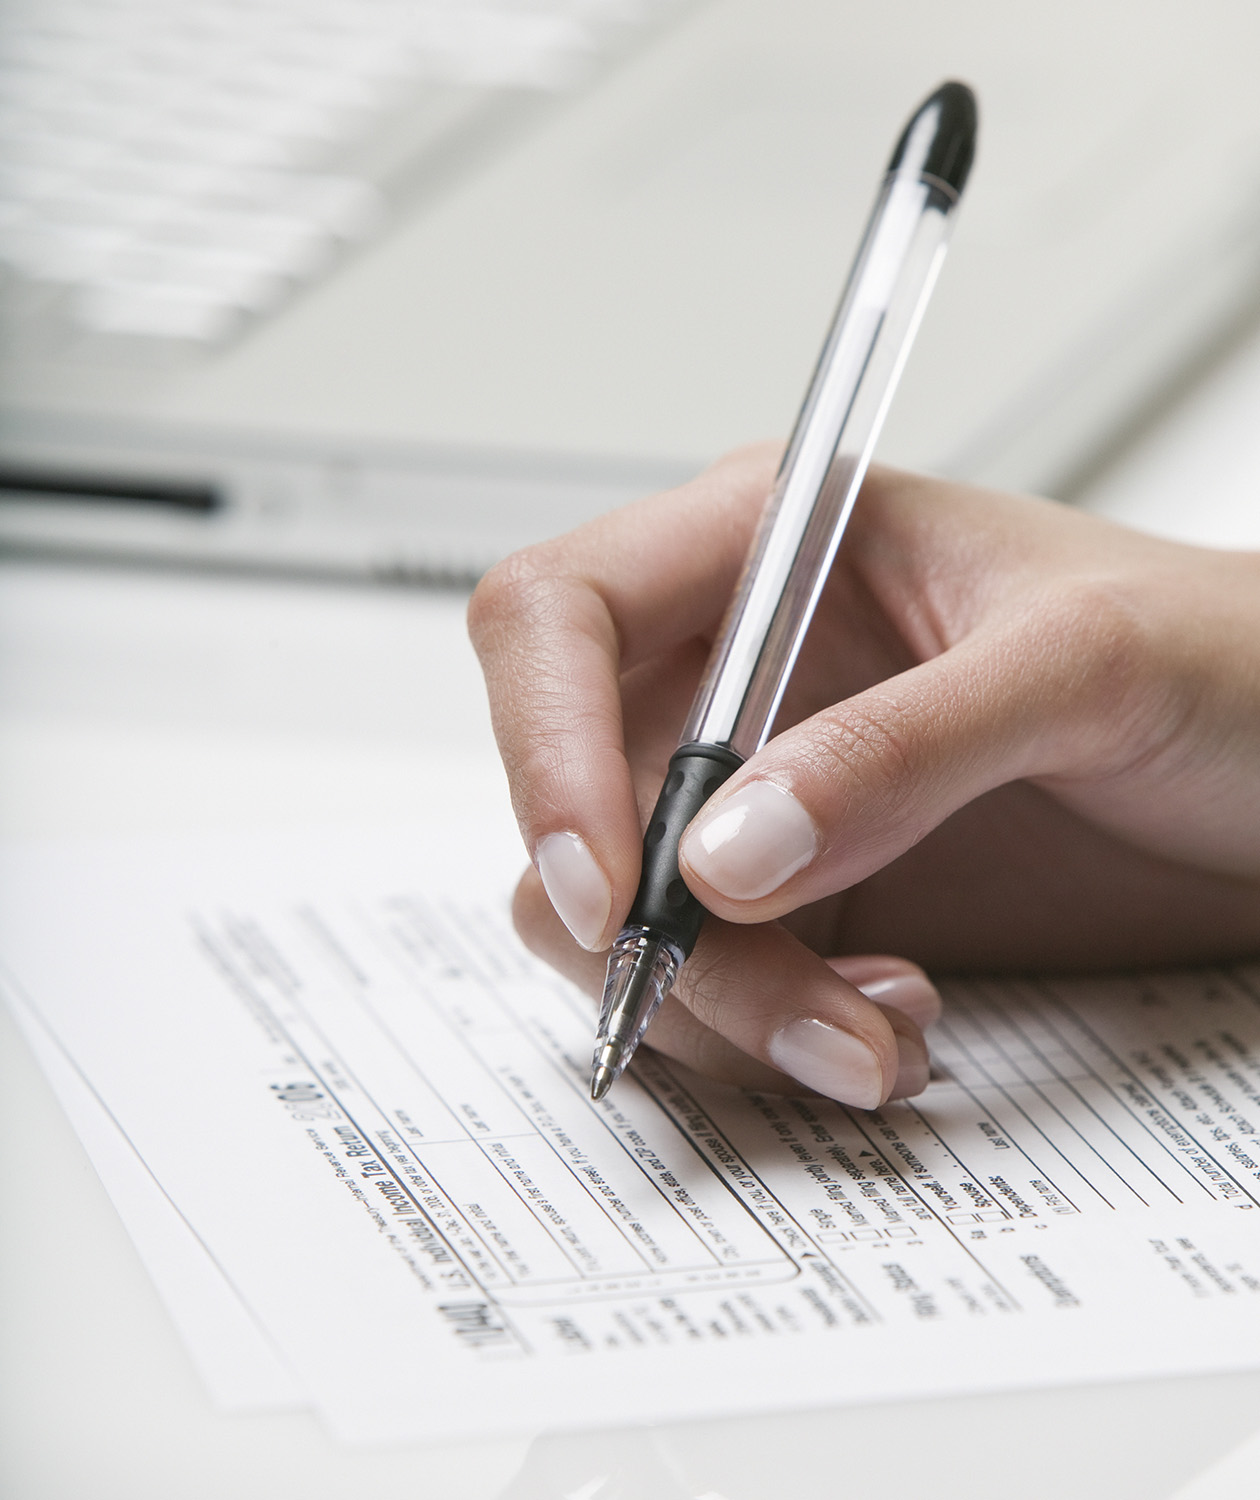 Fillng out a tax form